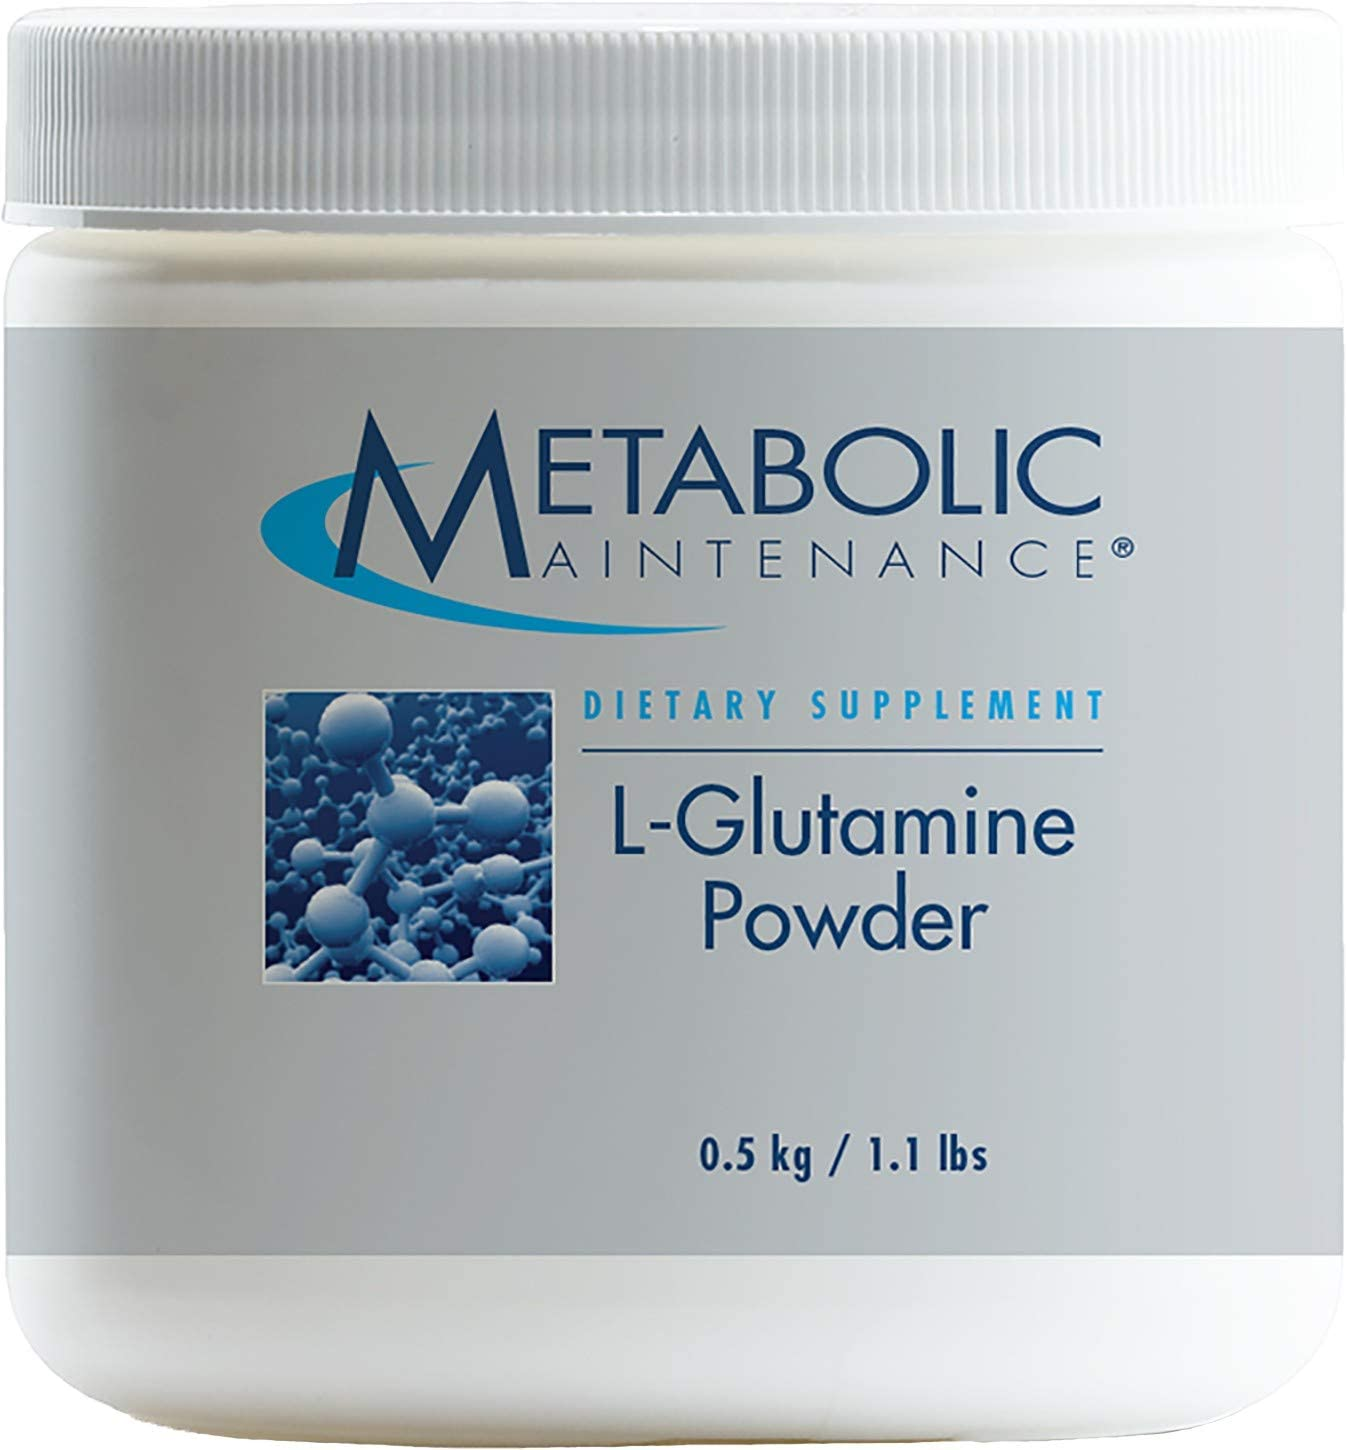 Metabolic Maintenance L-Glutamine Powder – 1000 Milligrams, Pure Amino Acid Support for Gut Health, 500 Grams, 500 Servings